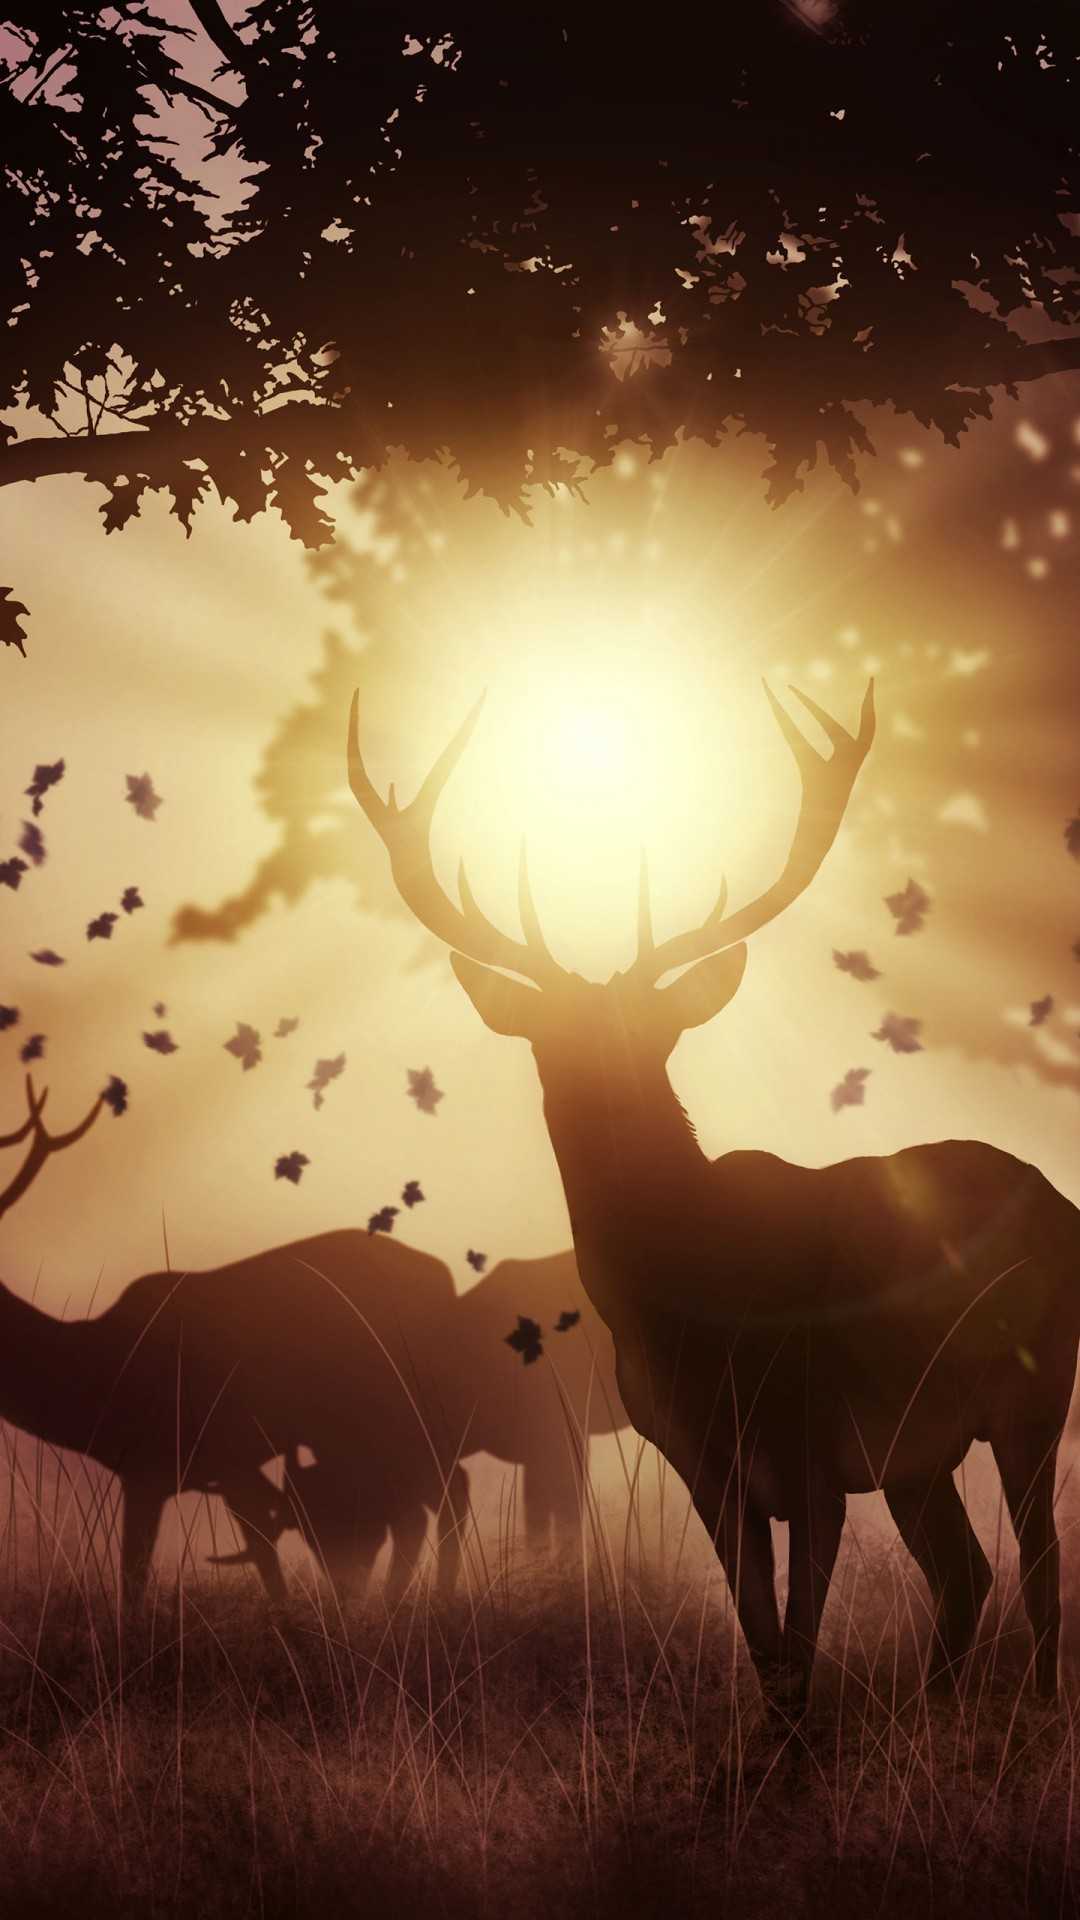 Free Sunset Deers phone wallpaper by natasha16